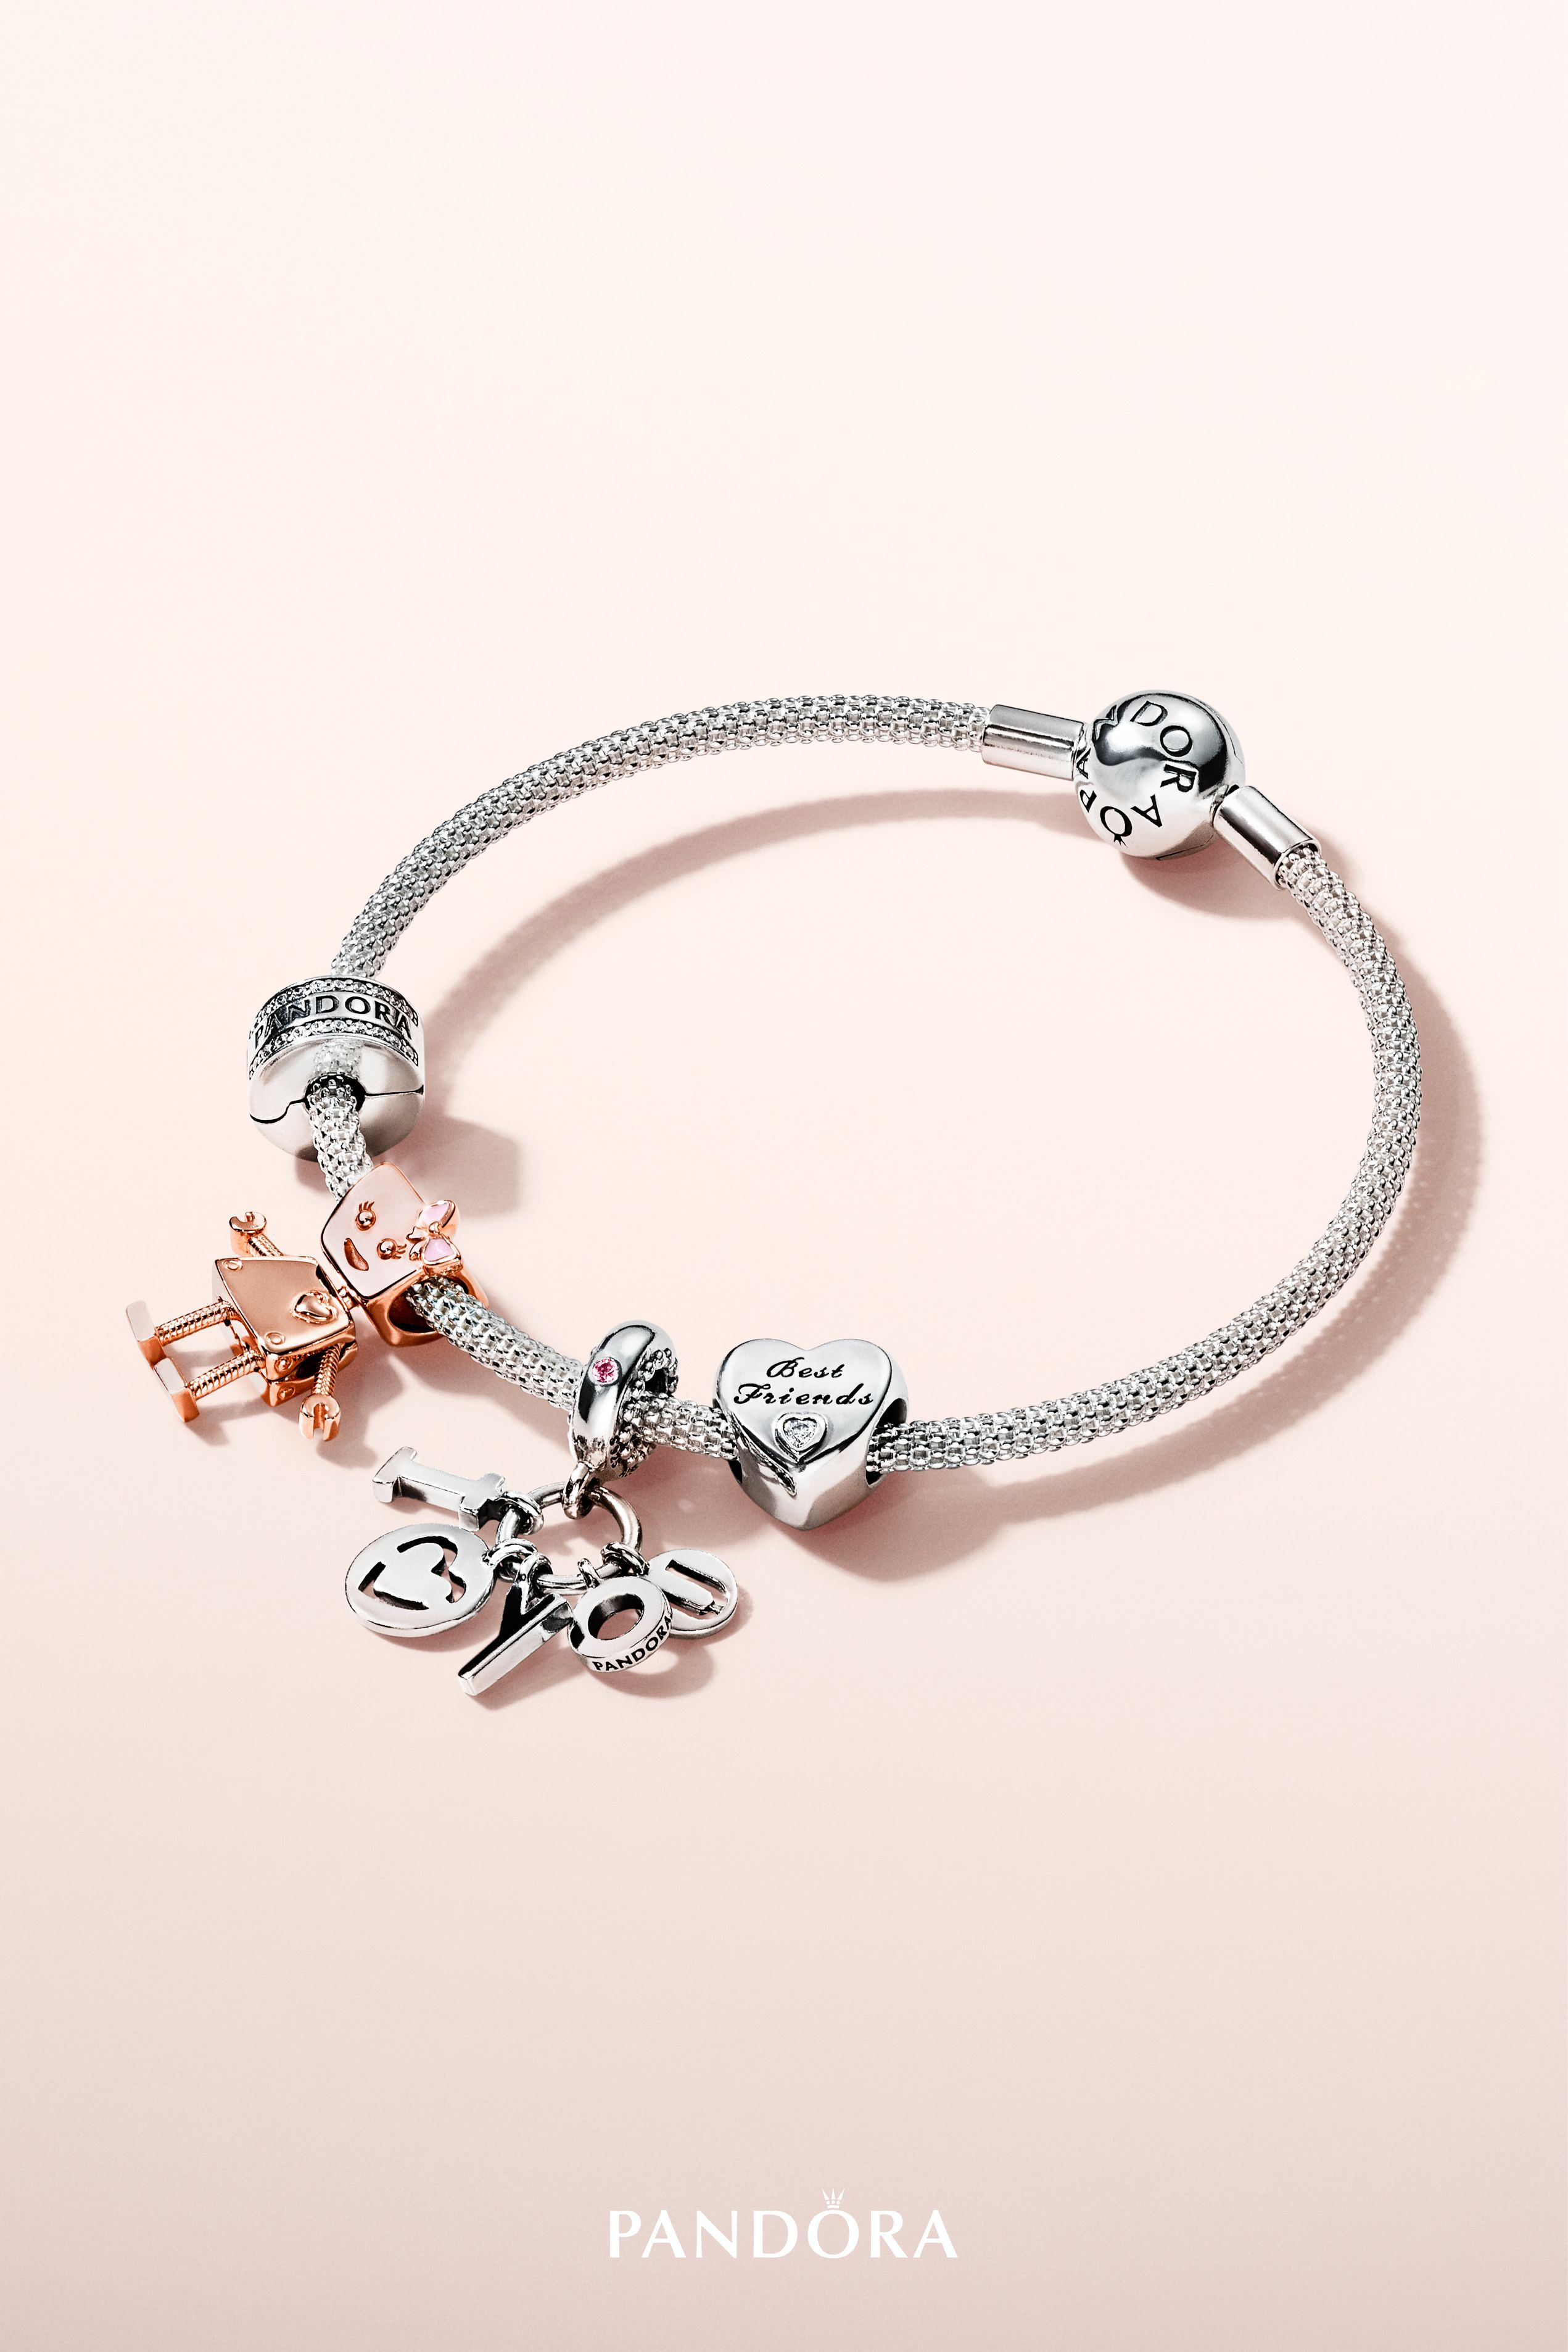 8b0526c84 Celebrate yours with Bella Bot, our sweet and smart robot charm and one of  our #PANDORAFriends. Who would you give it to as a gift?